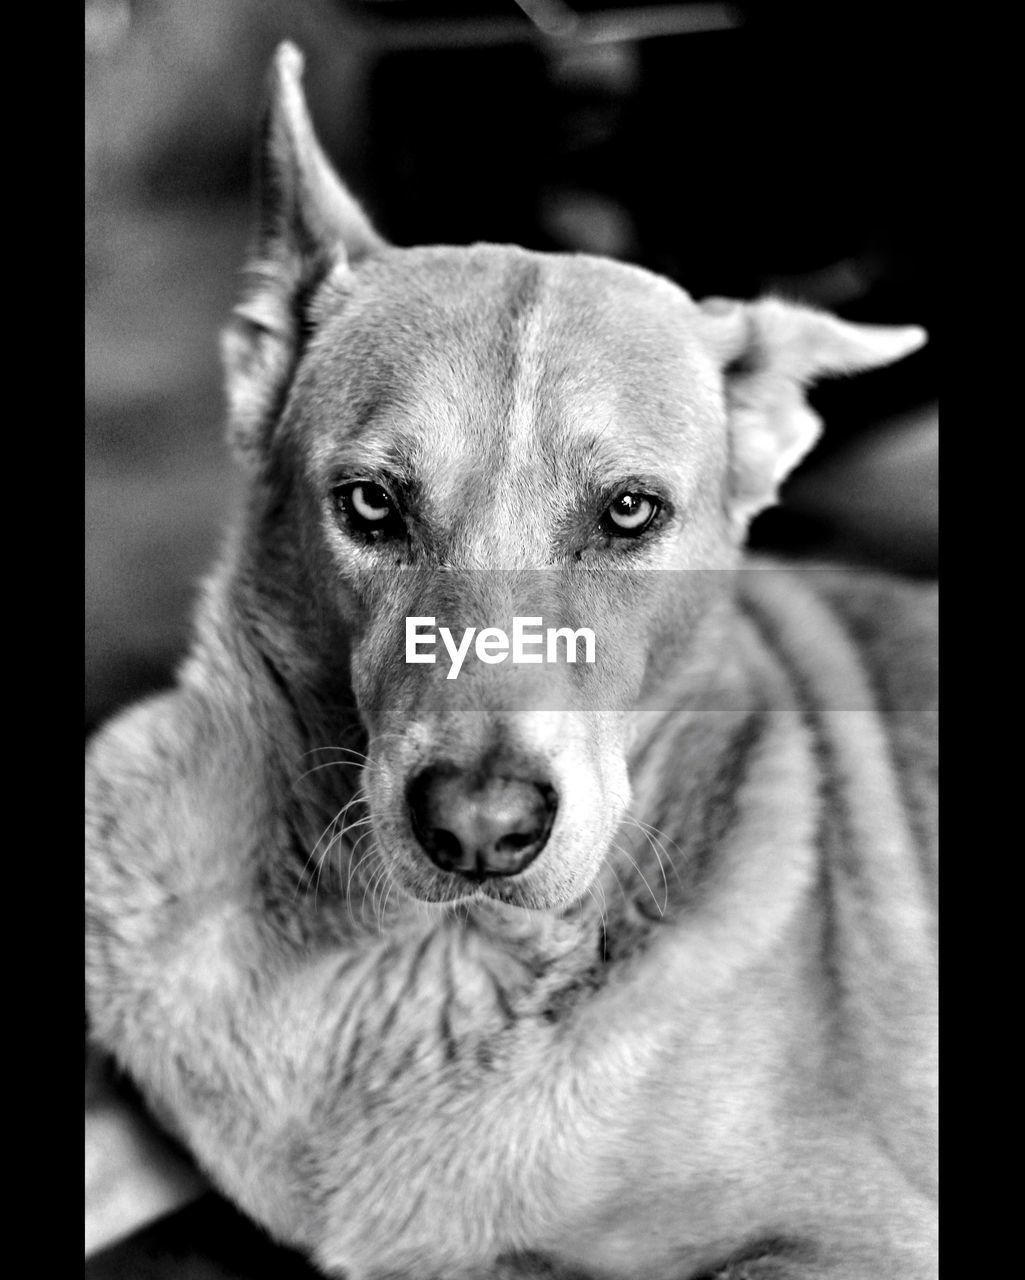 one animal, dog, canine, animal themes, mammal, domestic, animal, domestic animals, pets, vertebrate, looking at camera, portrait, close-up, no people, animal body part, transfer print, focus on foreground, auto post production filter, relaxation, animal head, weimaraner